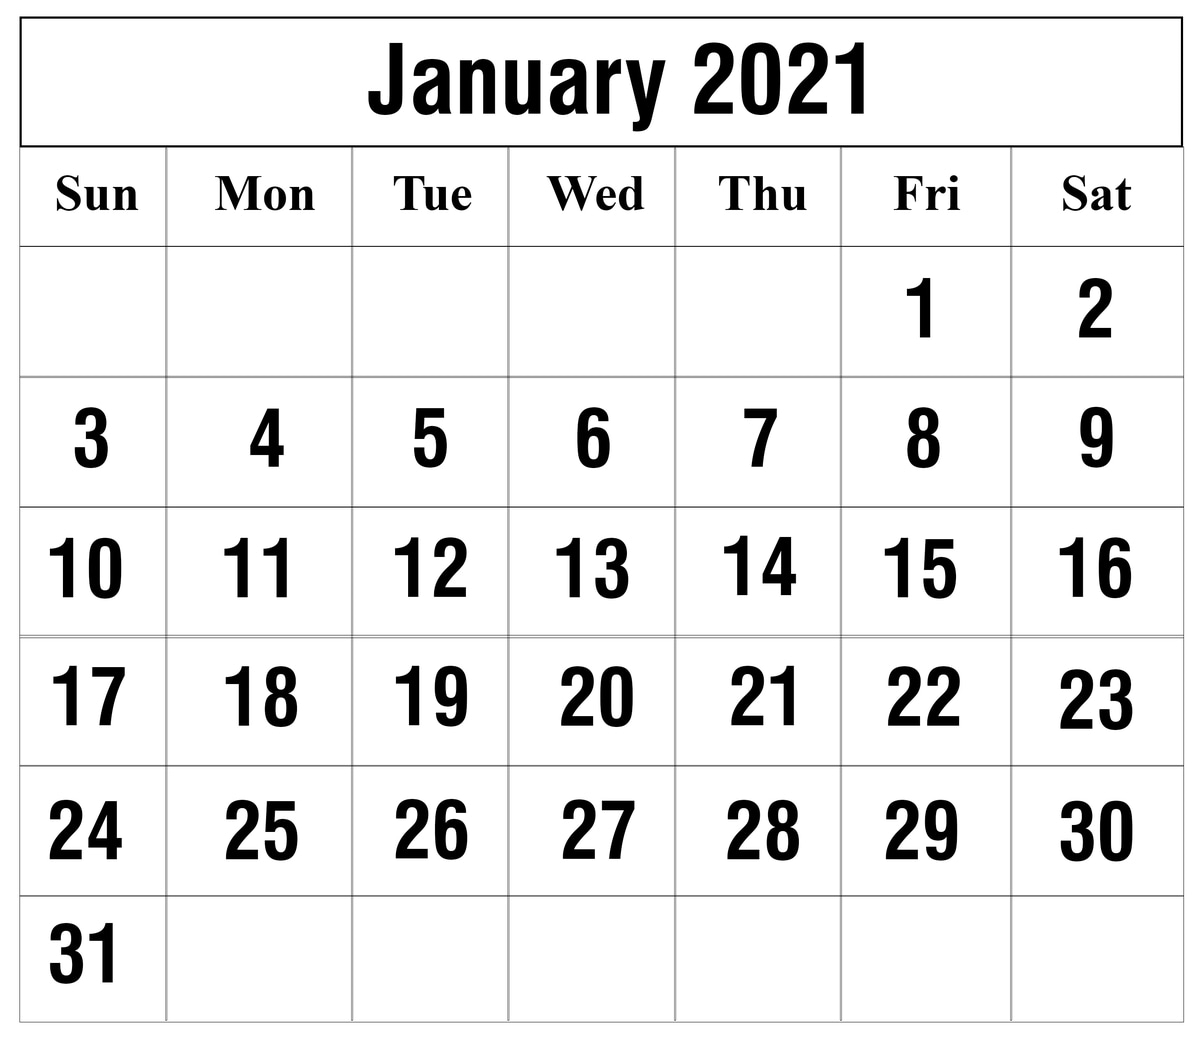 Free January 2021 Printable Calendar Template In Pdf, Excel Regarding Julian Vs Gregorian Calendar 2021